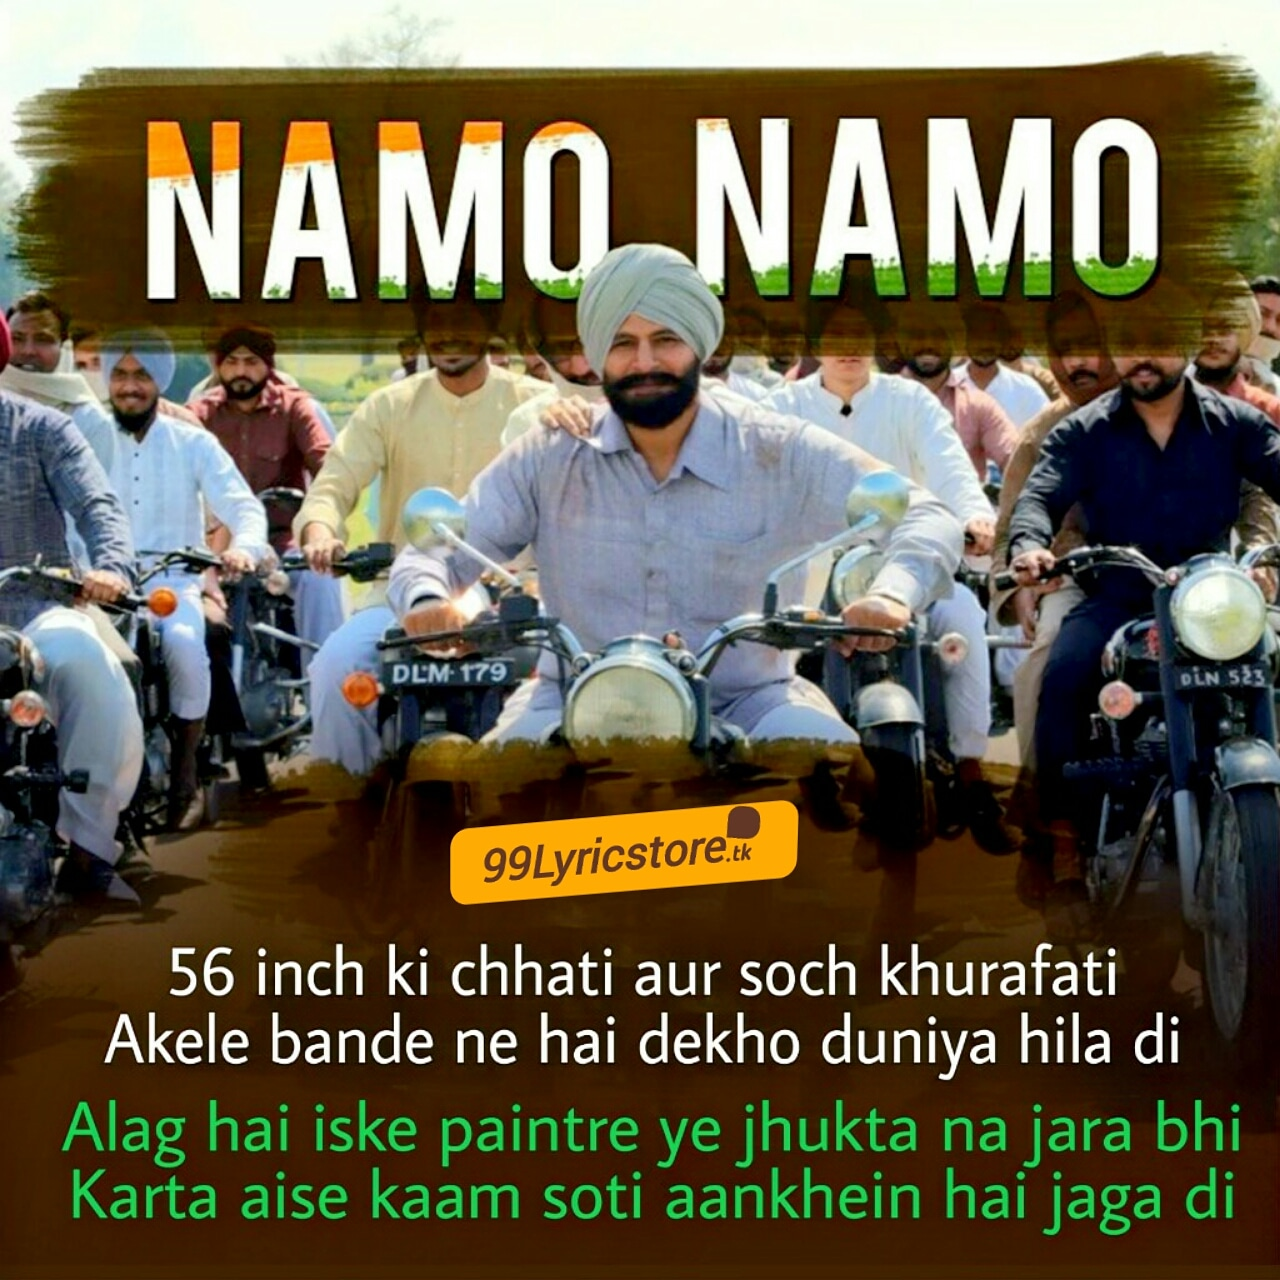 Namo Namo Rap Song Lyrics From Movie PM Narendra Modi Sung by Sandip Singh and Rap by Parry G